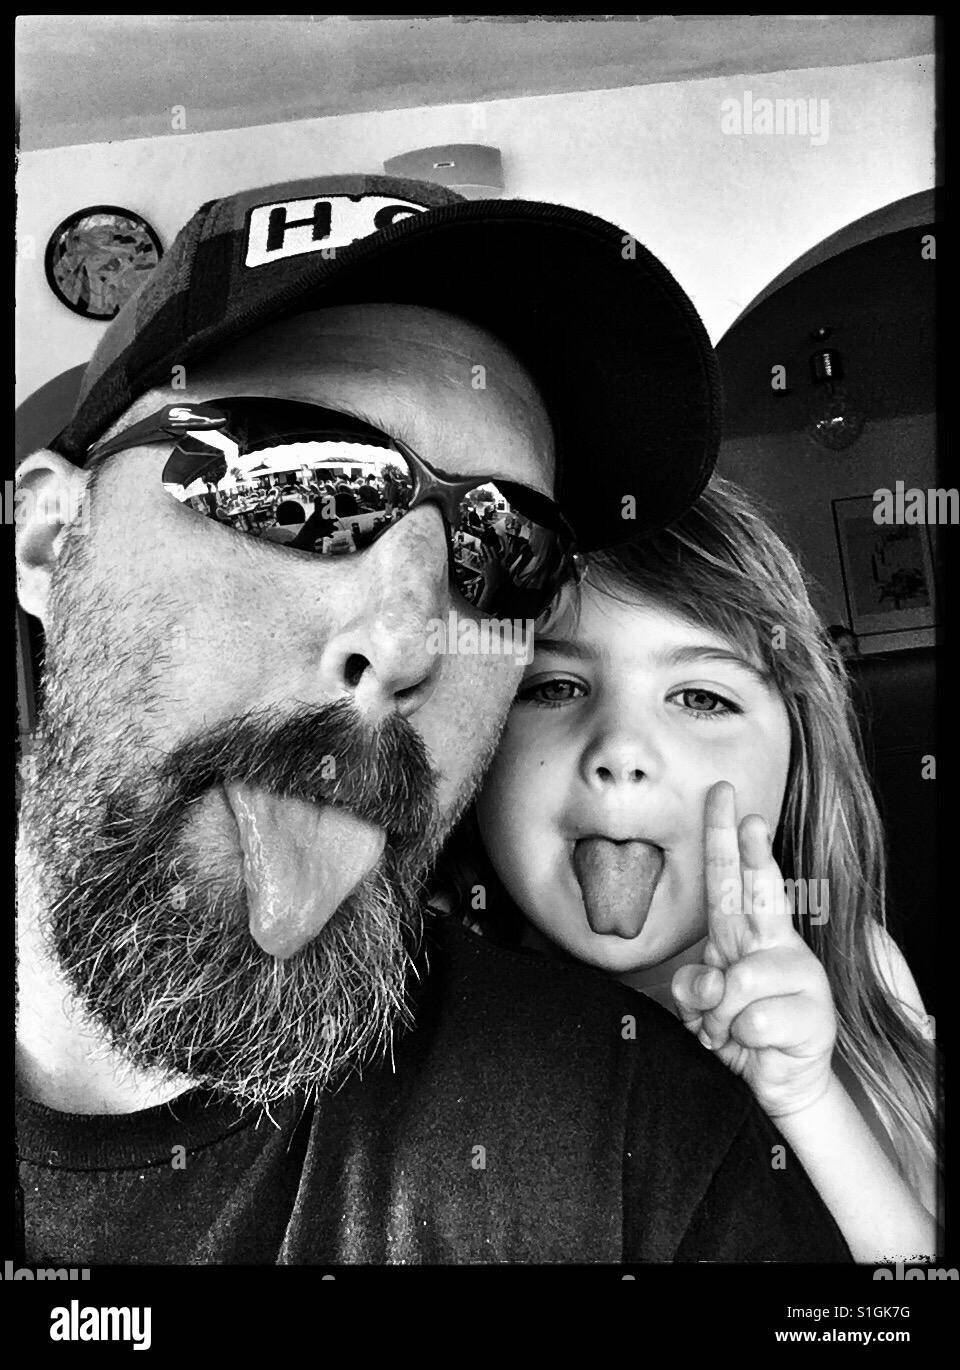 Father and daughter sticking their tongues out. - Stock Image